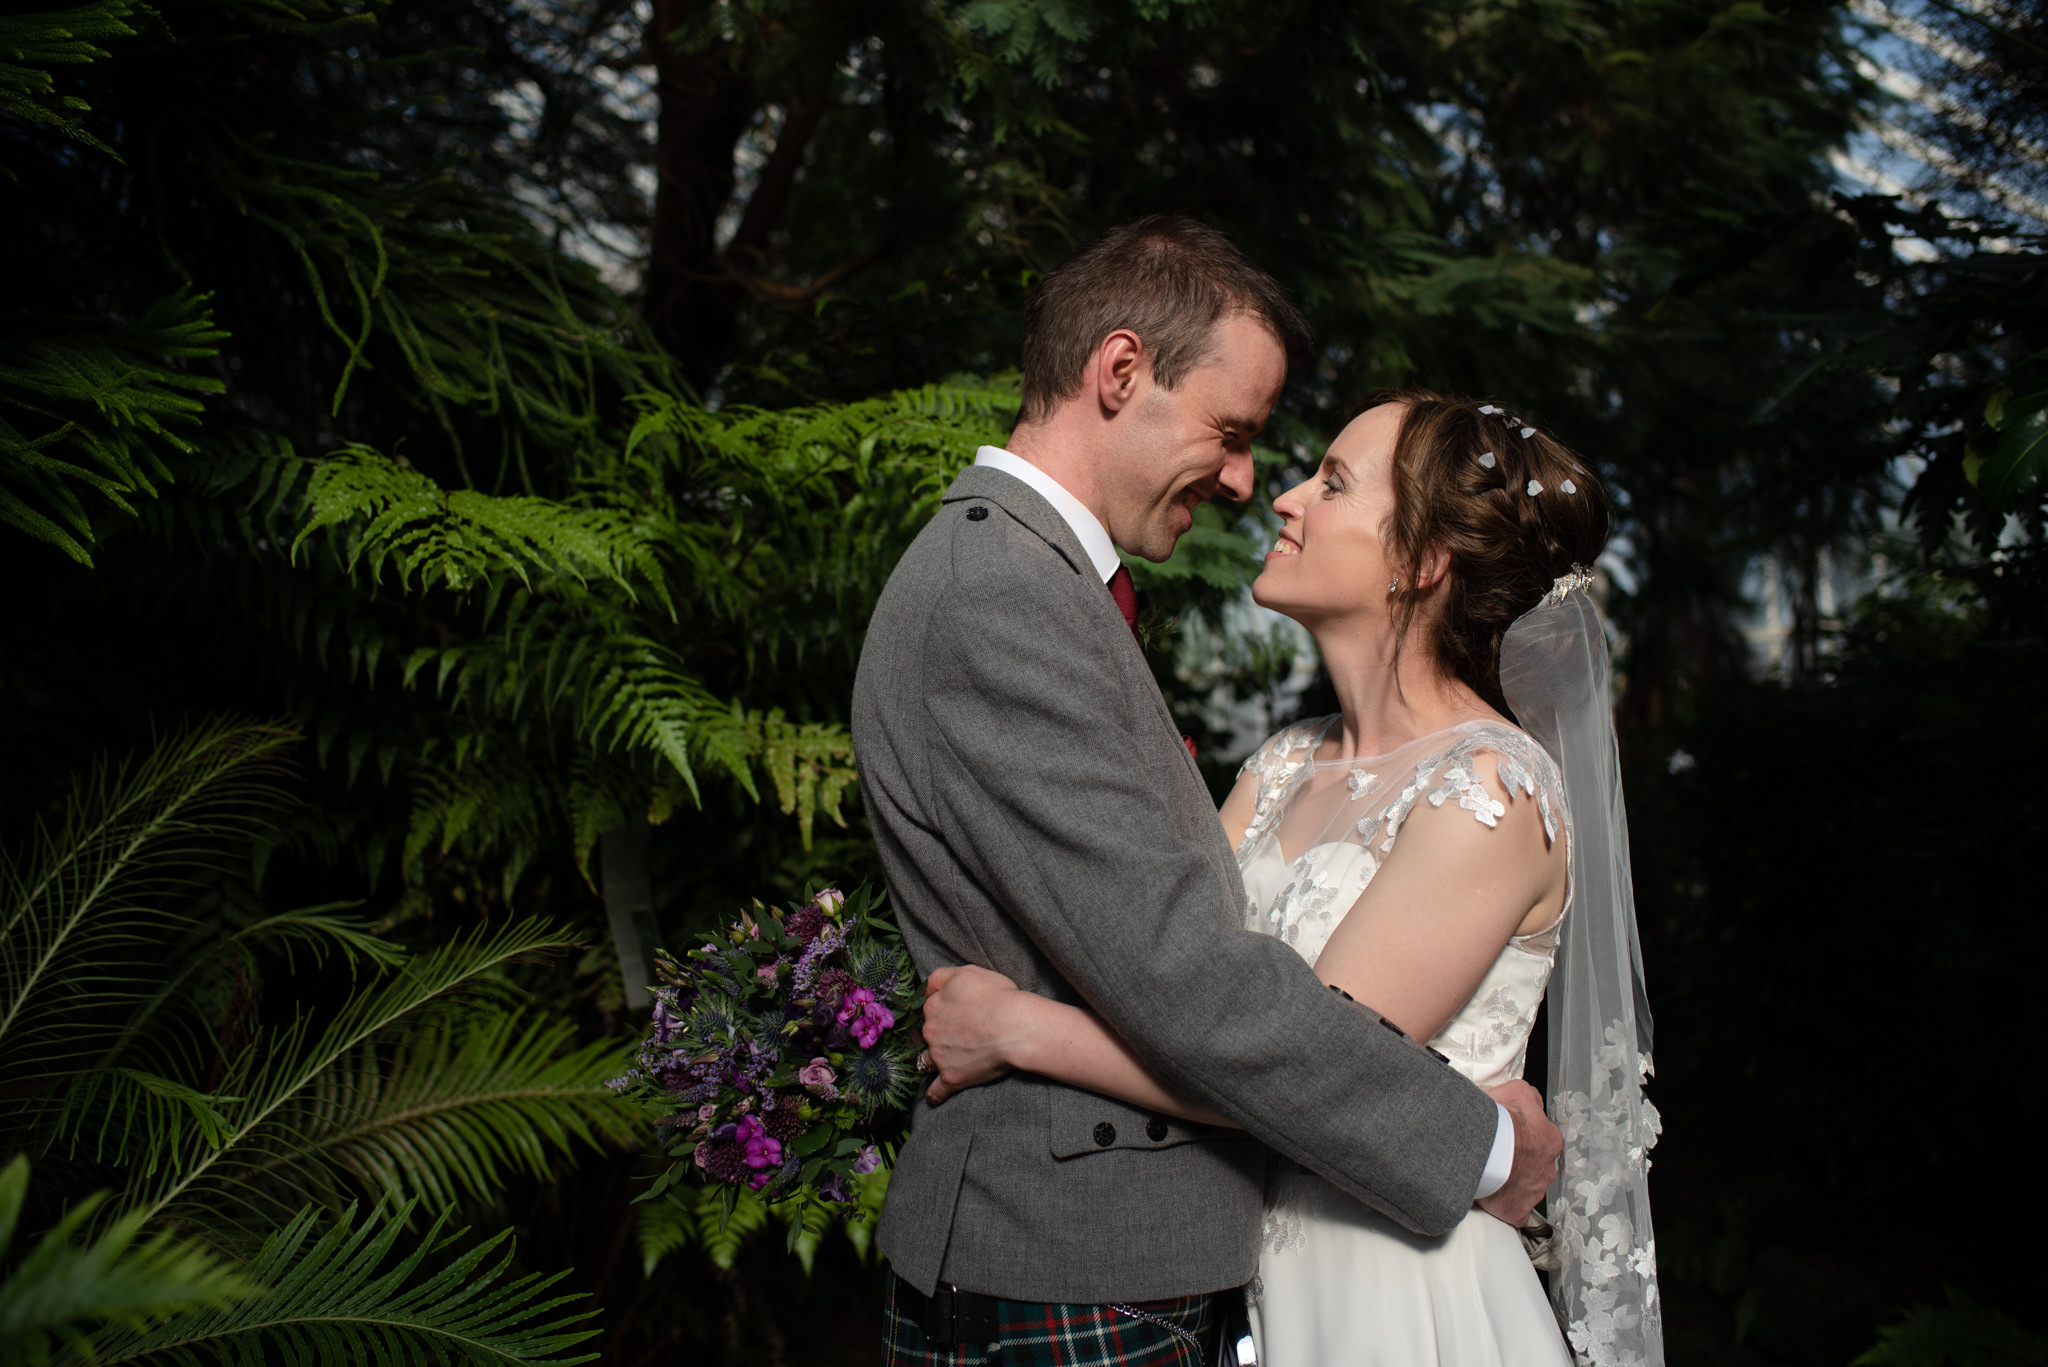 WEDDINGS - Natural, relaxed wedding photography to tell your story.